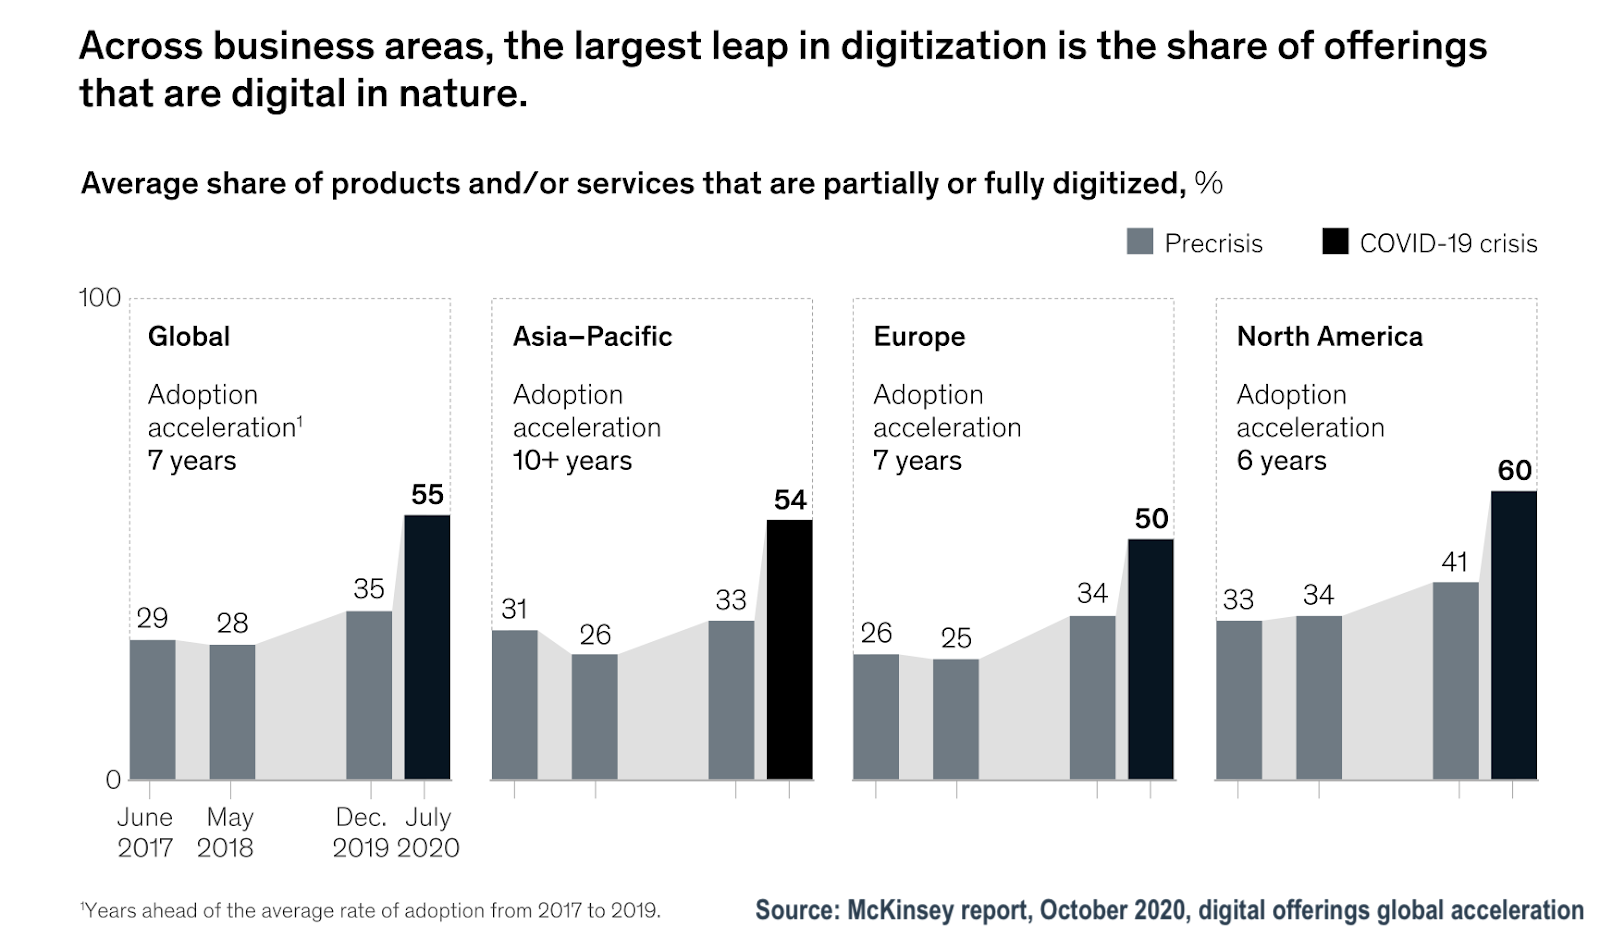 Graphs from McKinsey report, October 2020, digital offerings global acceleration showing global spikes